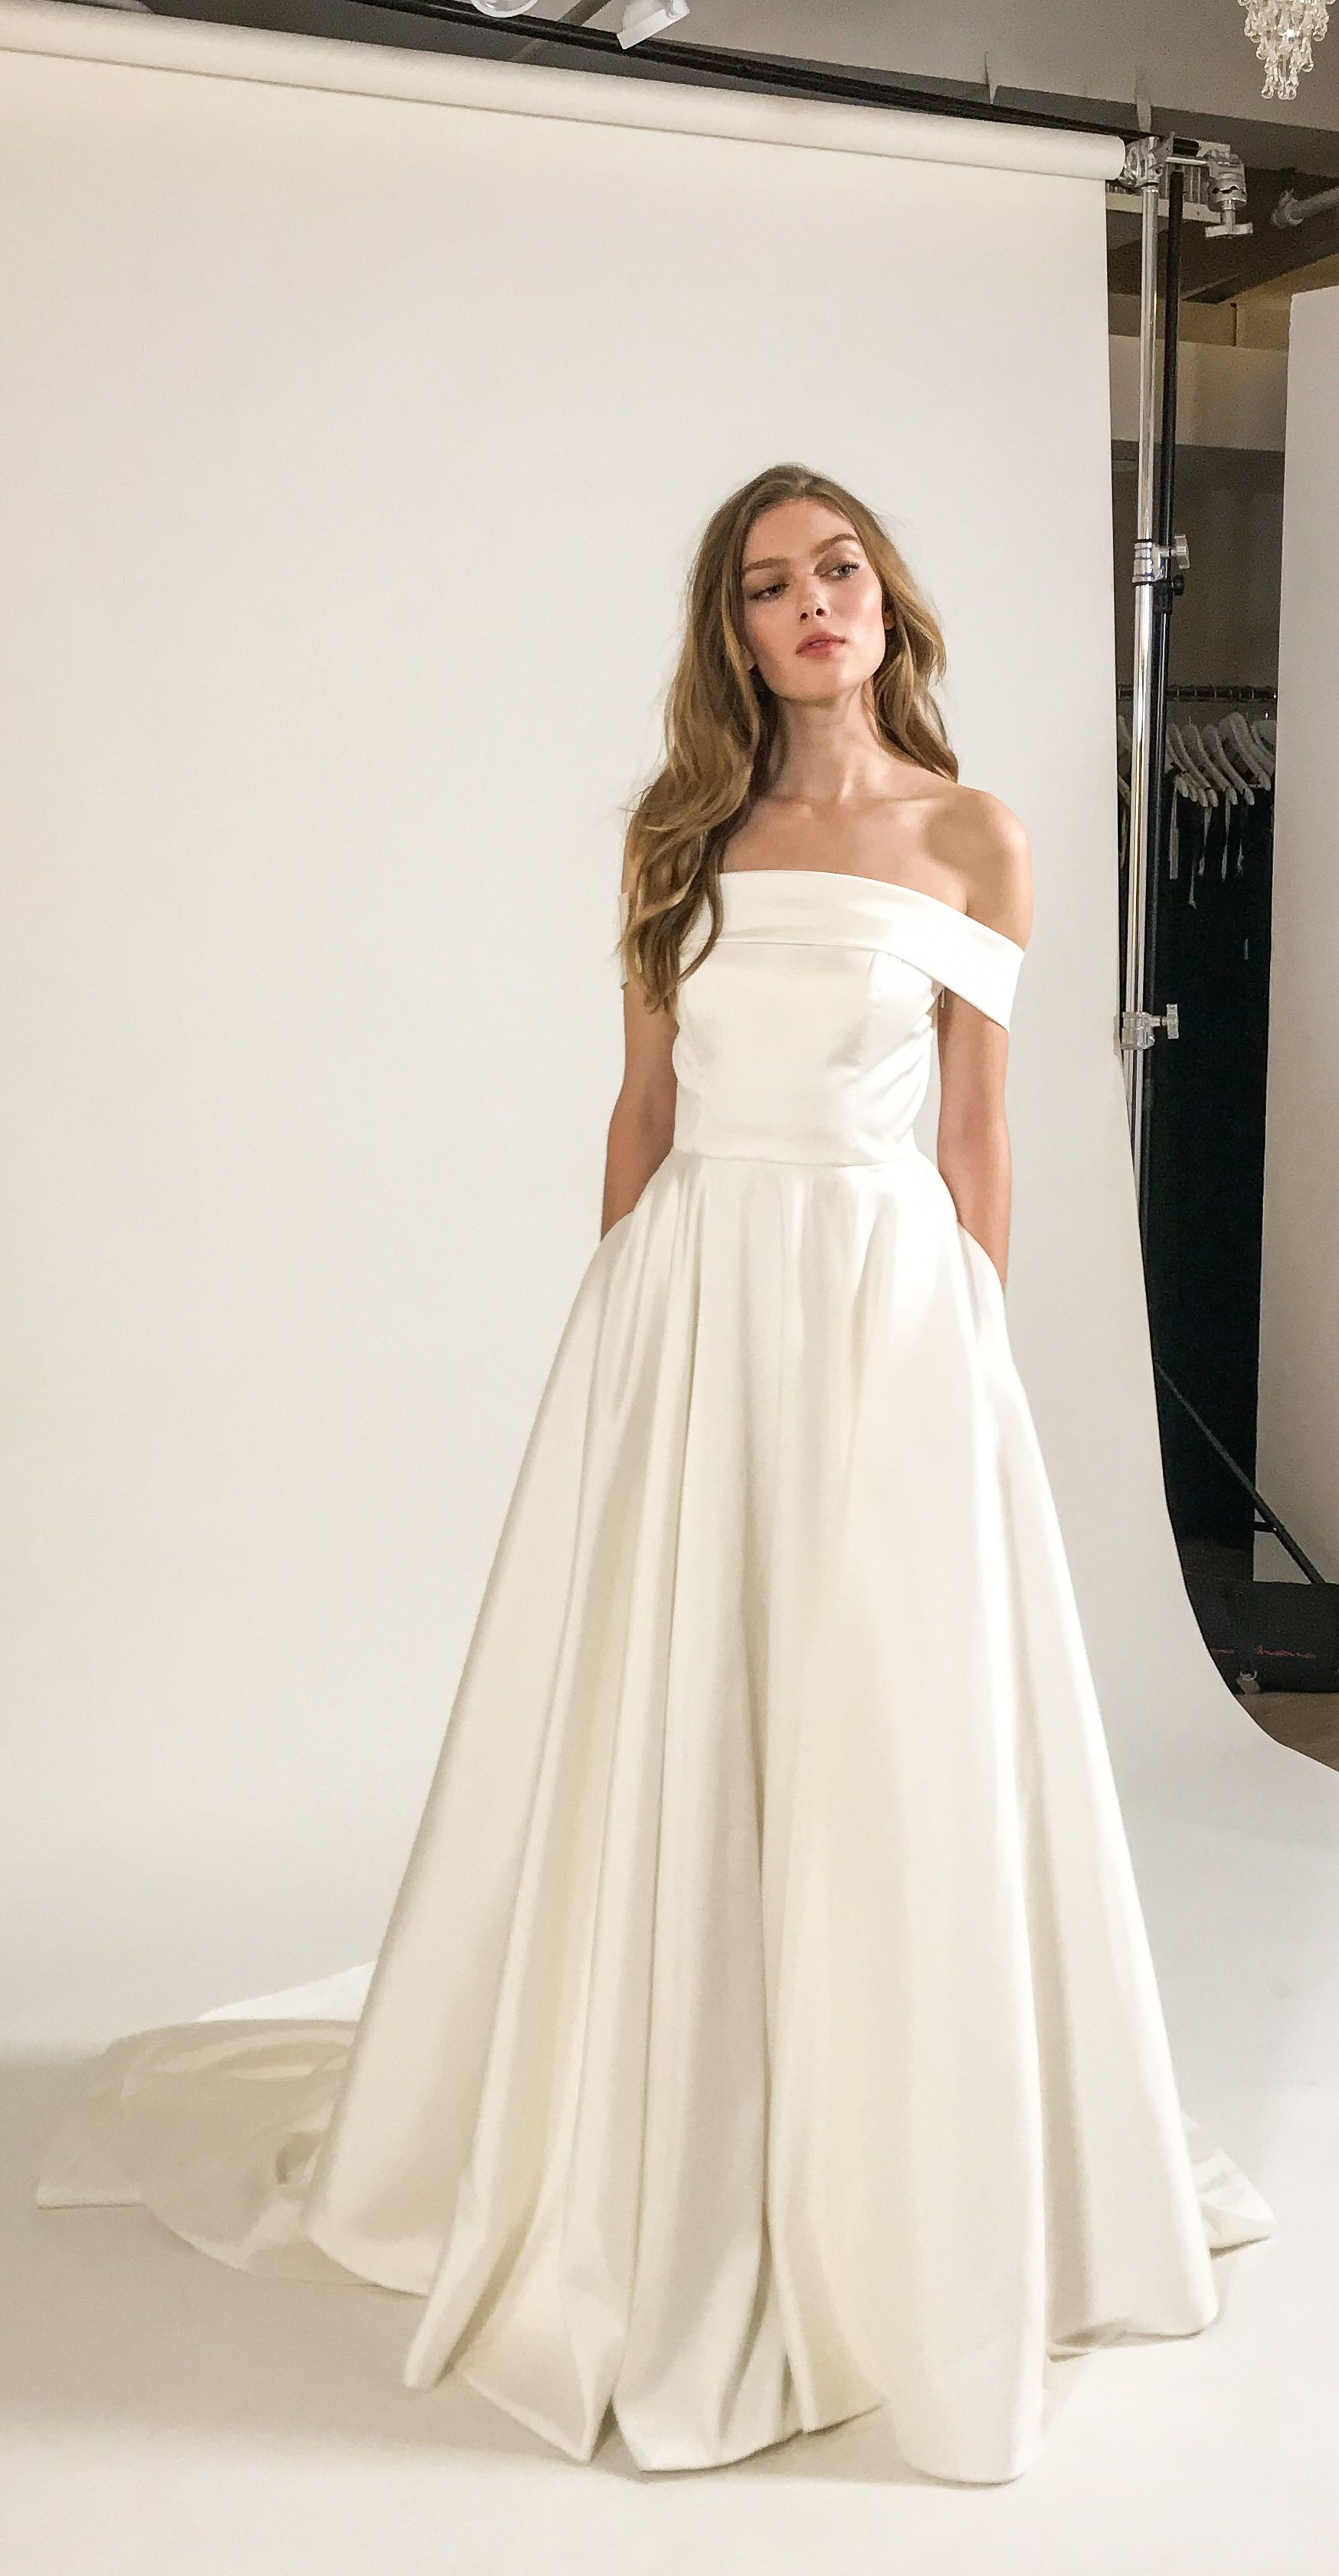 Princess Bride Cool Girl Vibe The Eliza Gown Is A Modern Take On The Classic Wedding Gowns Lace Backless Strapless Wedding Dress Princess Elegant Ball Gowns,Nice Long Dresses For Weddings